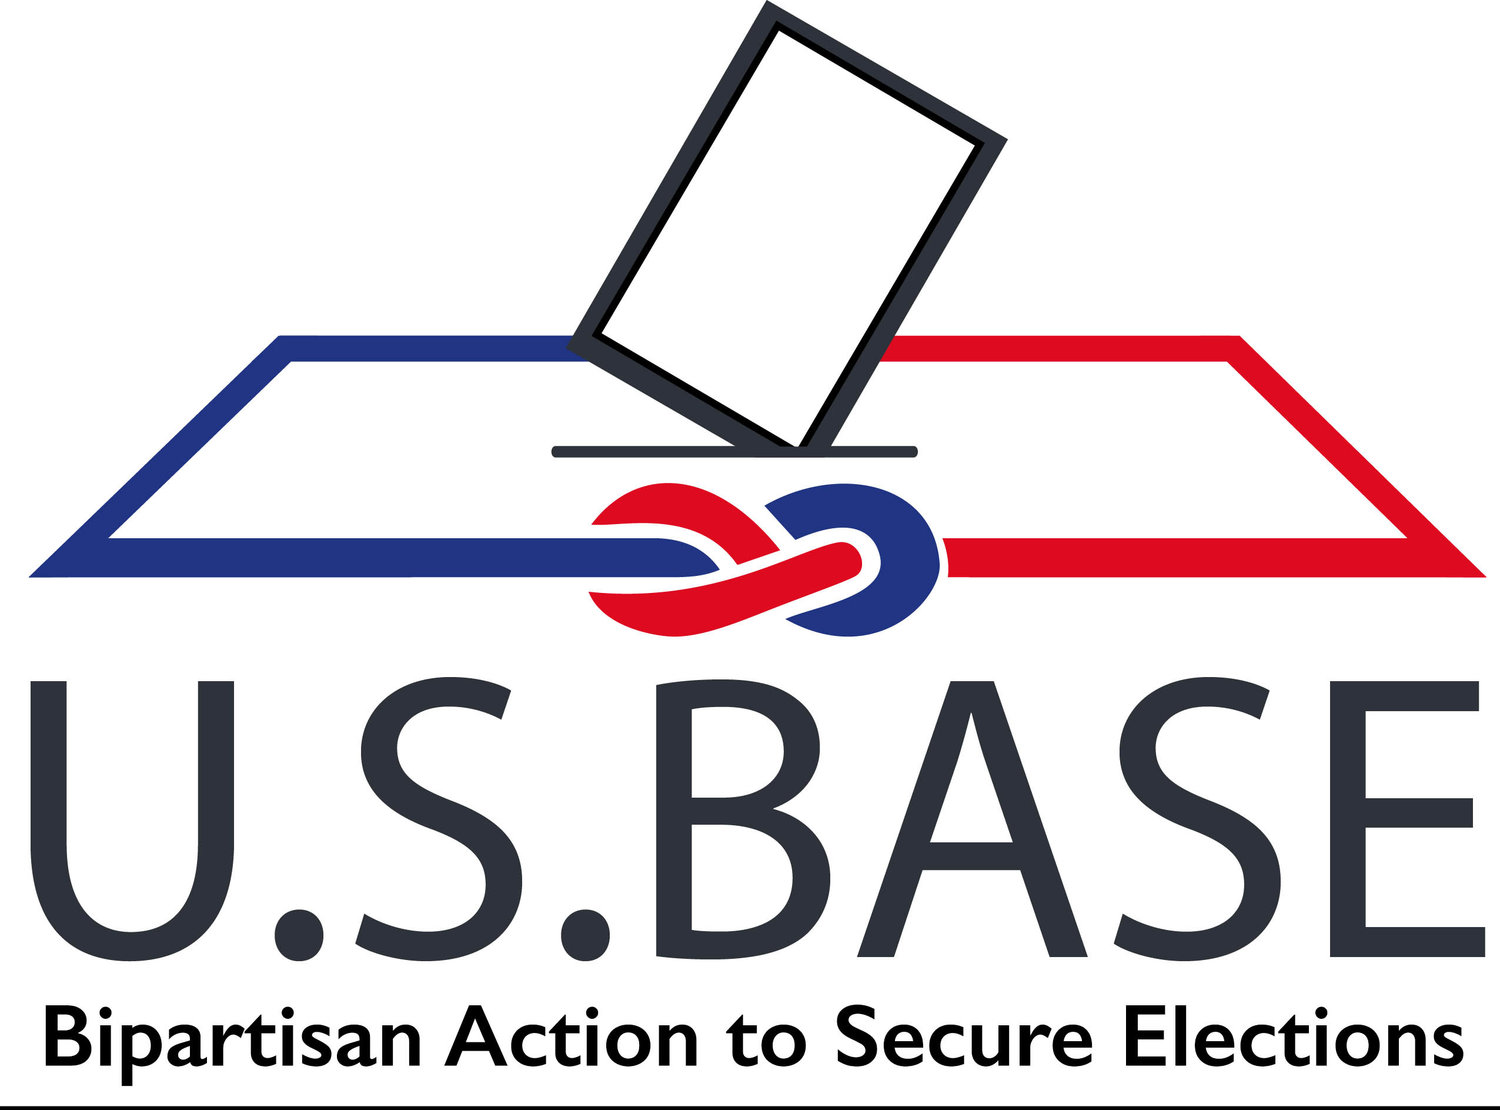 Bipartisan Alliance to Secure Elections